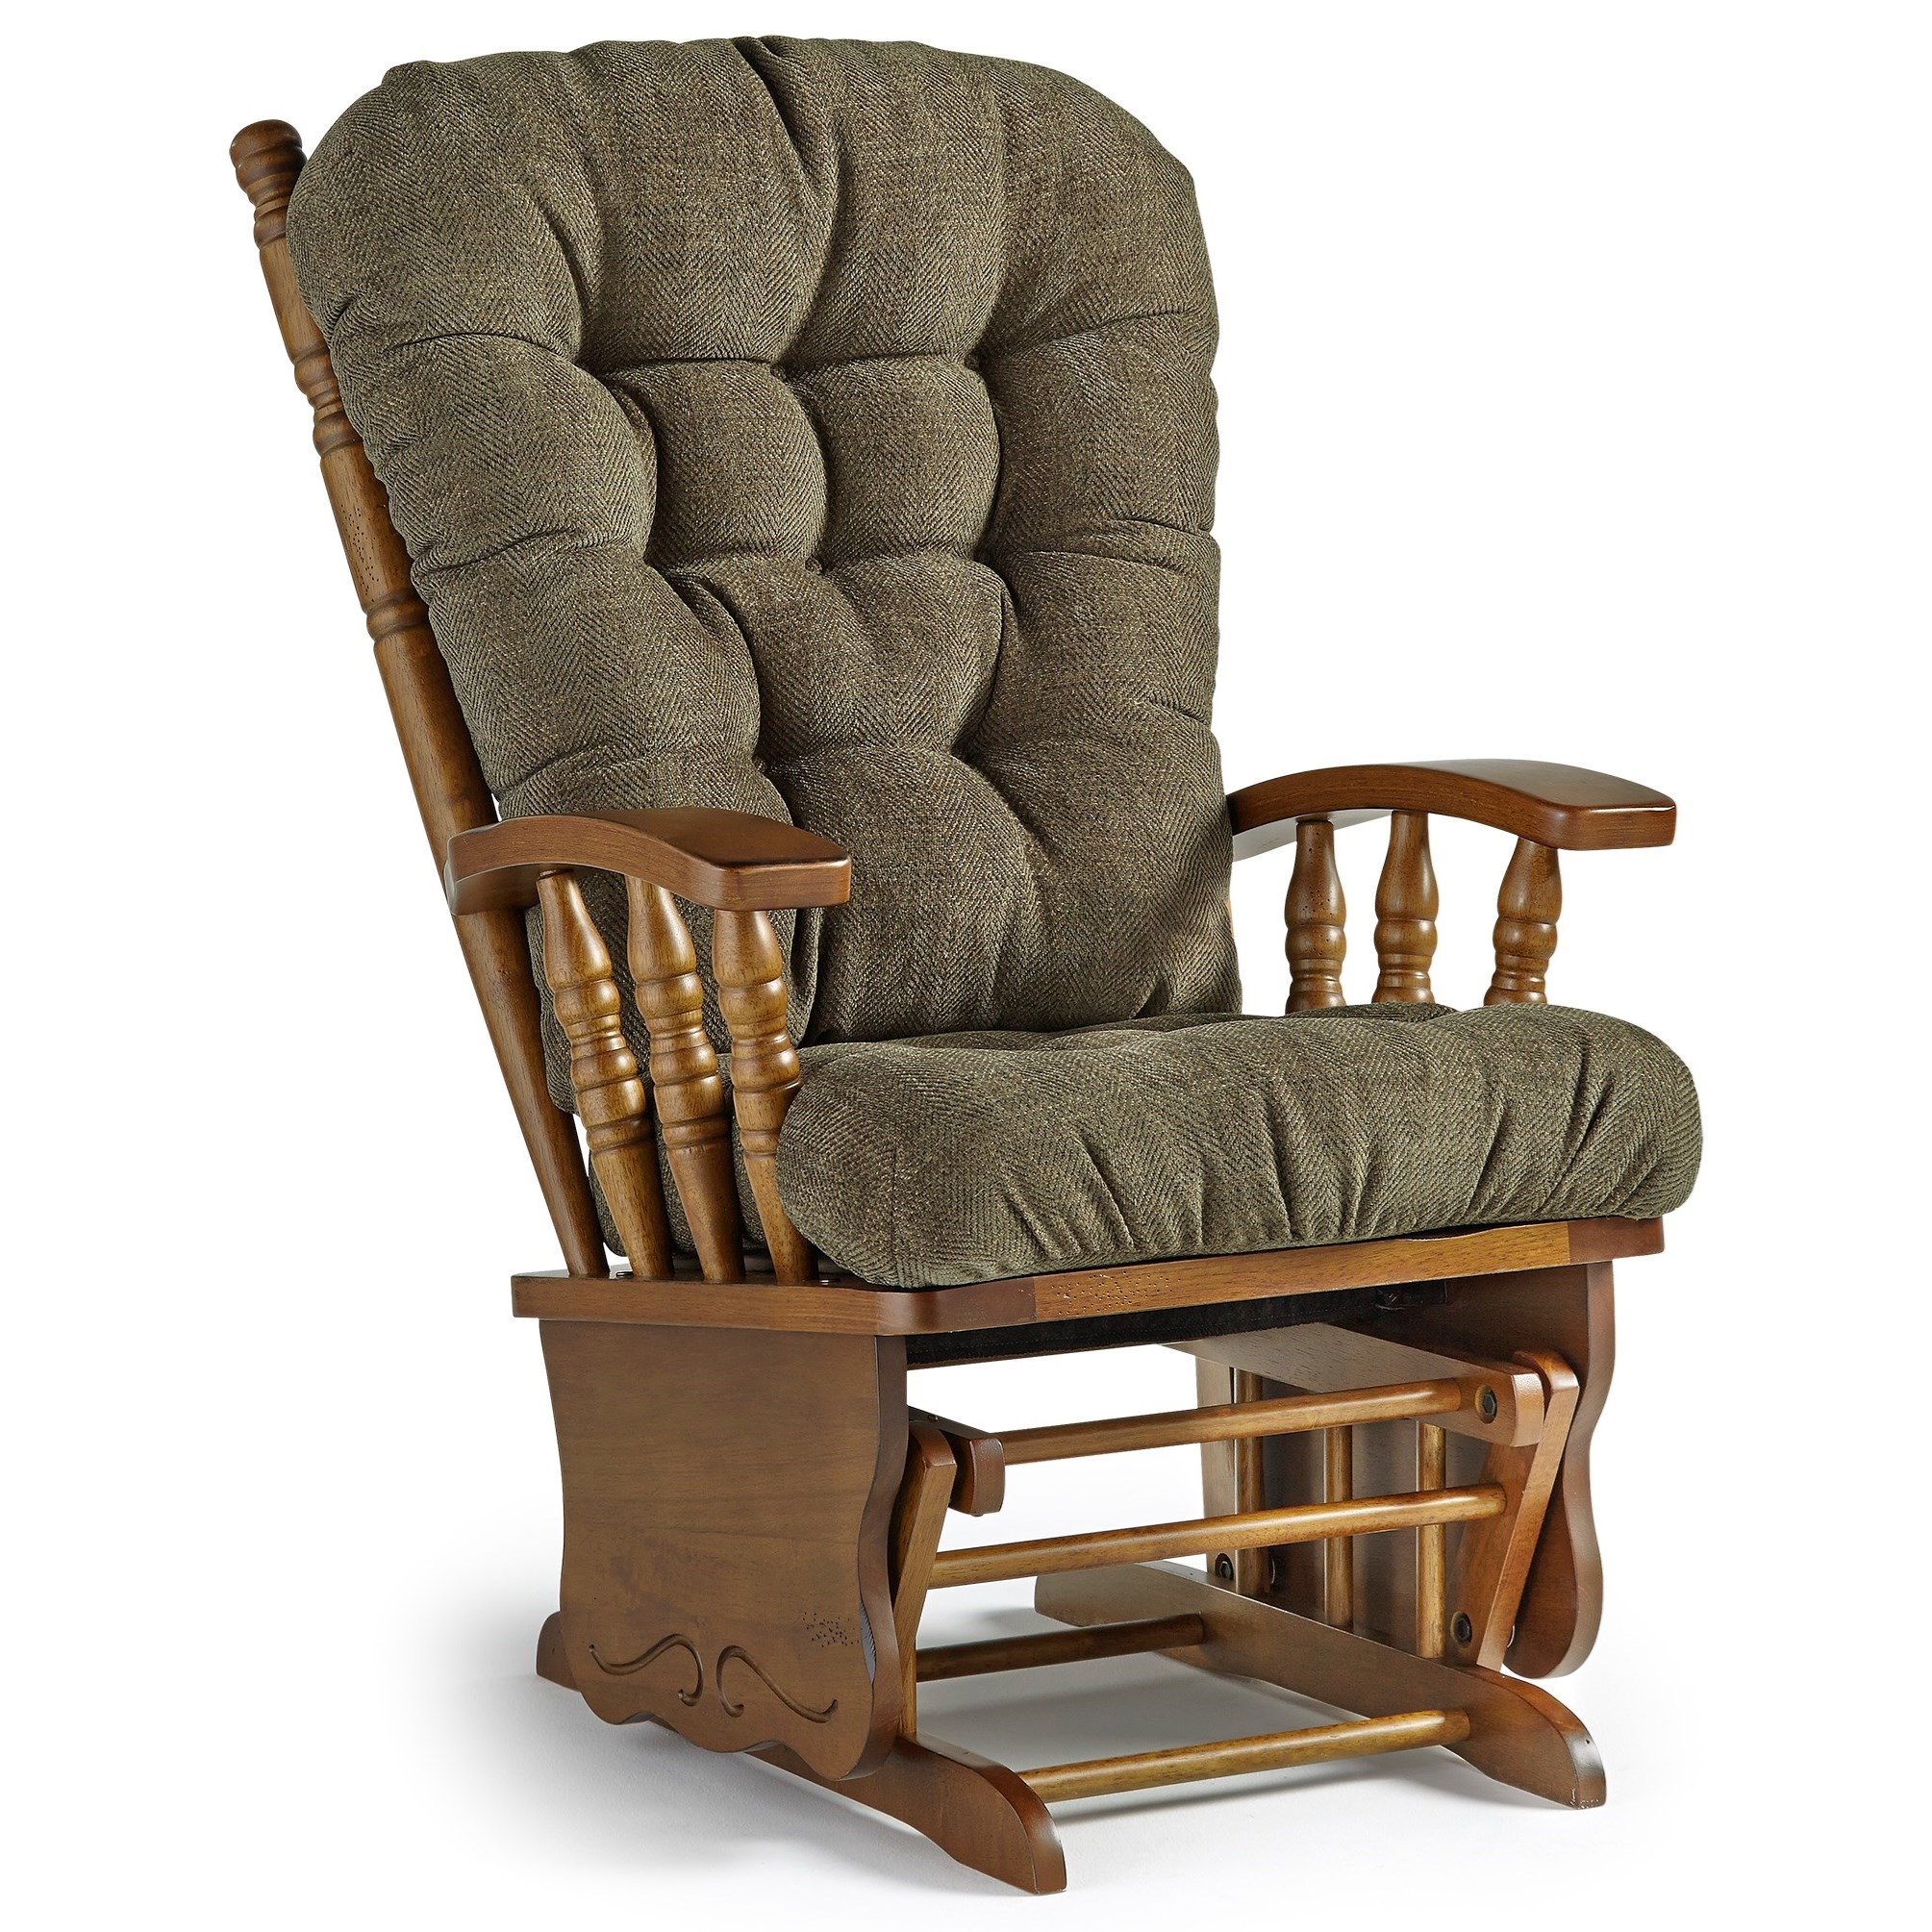 Best Home Furnishings Glider Rockers Henley Glider Rocker Rife 39 S Home Furniture Glider Rockers